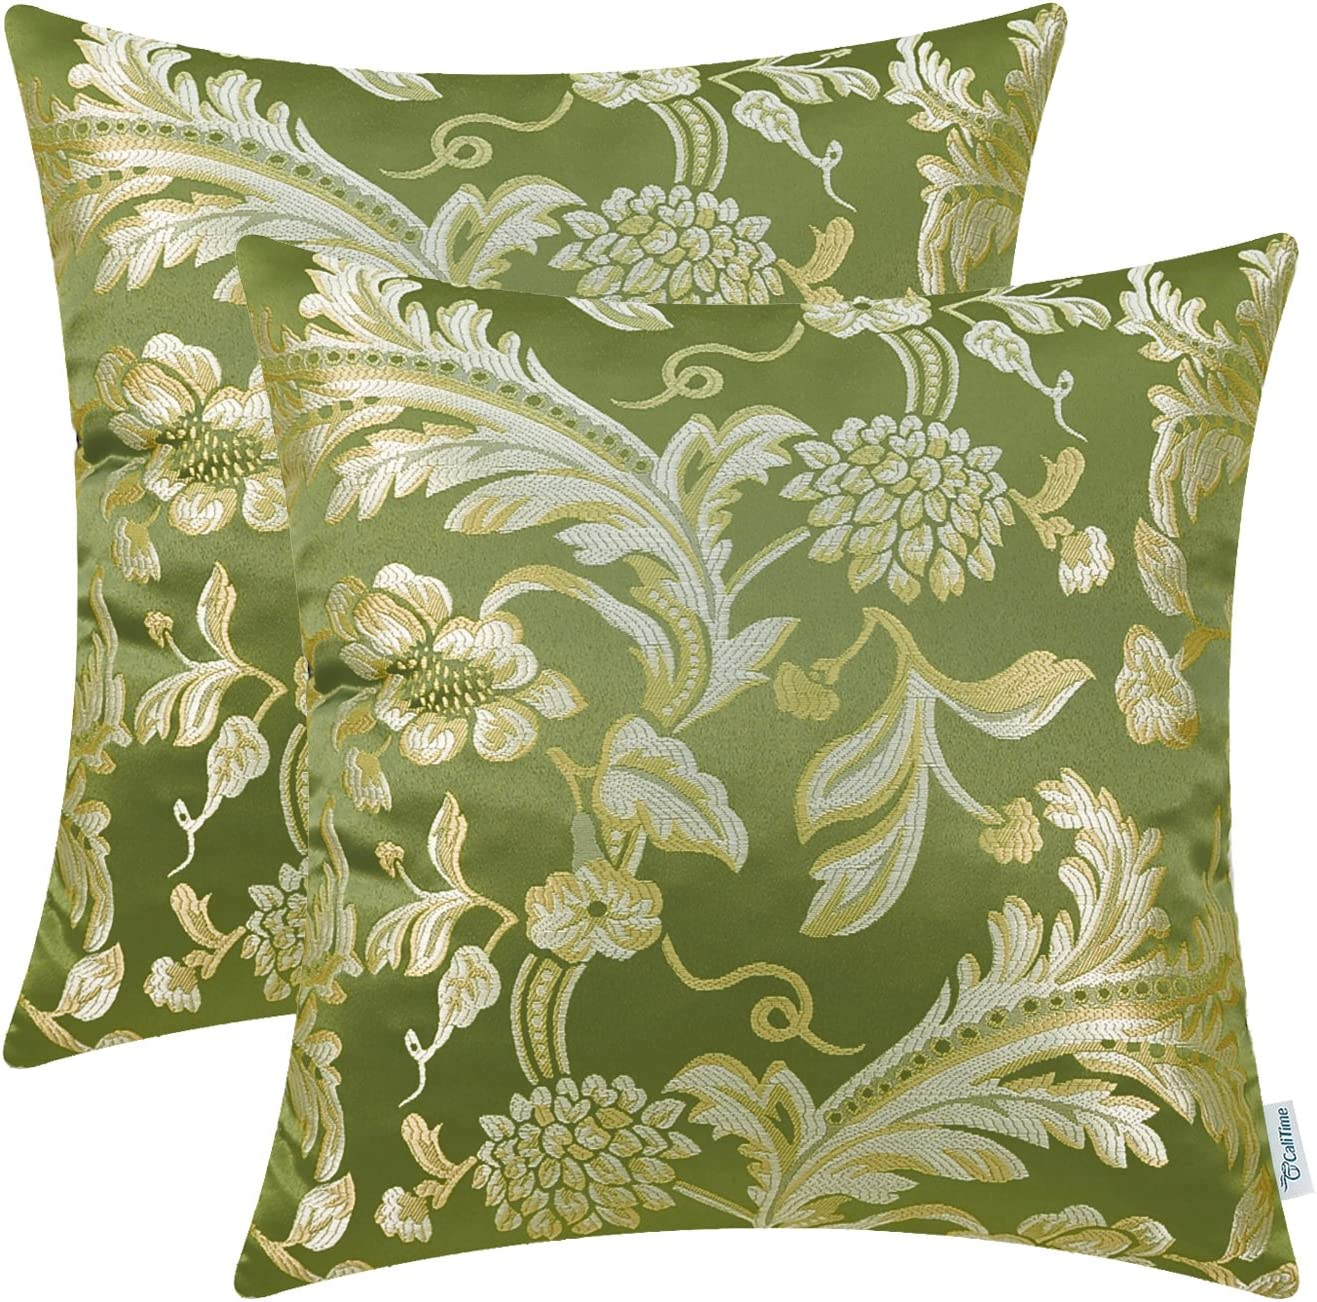 CaliTime Pack of 2 Throw Pillow Covers Cases for Couch Sofa Home Decor Vintage Floral Leaves 18 X 18 Inches Olive Green